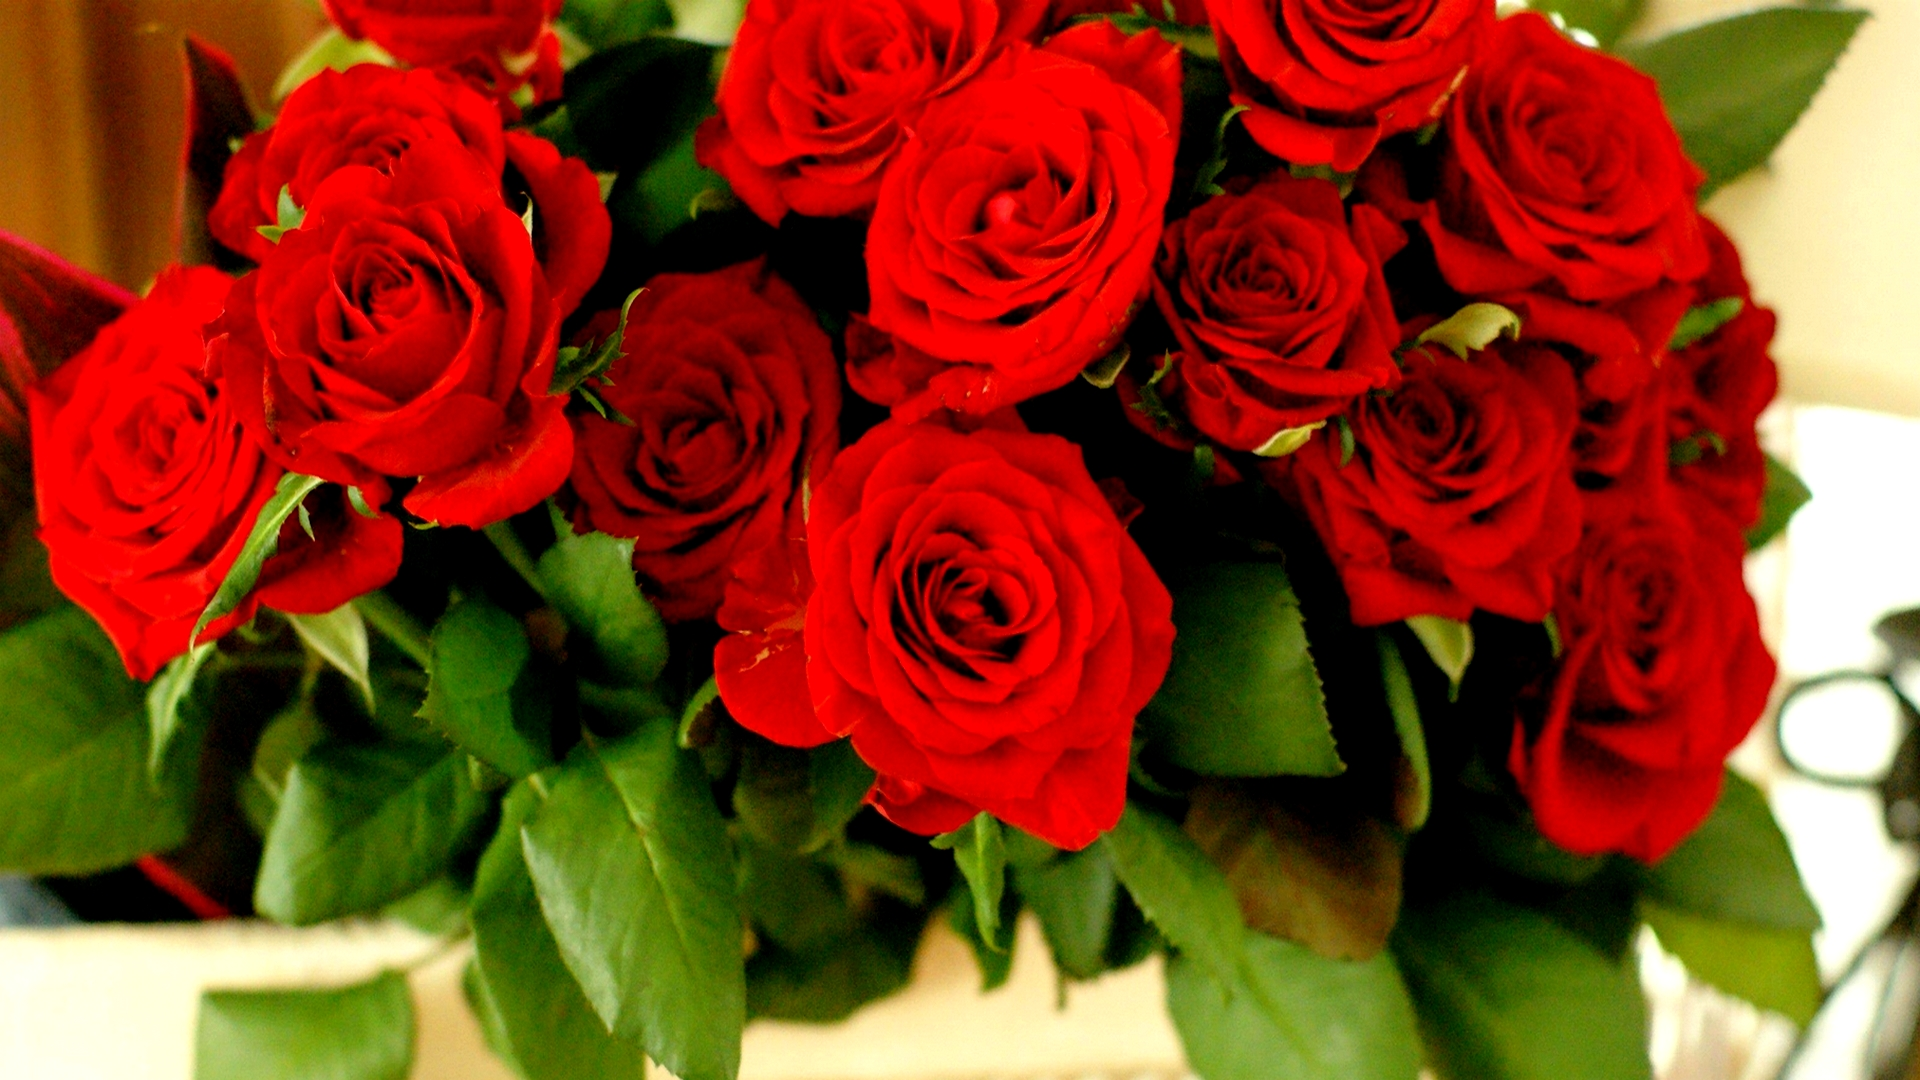 Red Roses Tumblr Background-23 | HD Wallpapers, HD images ...